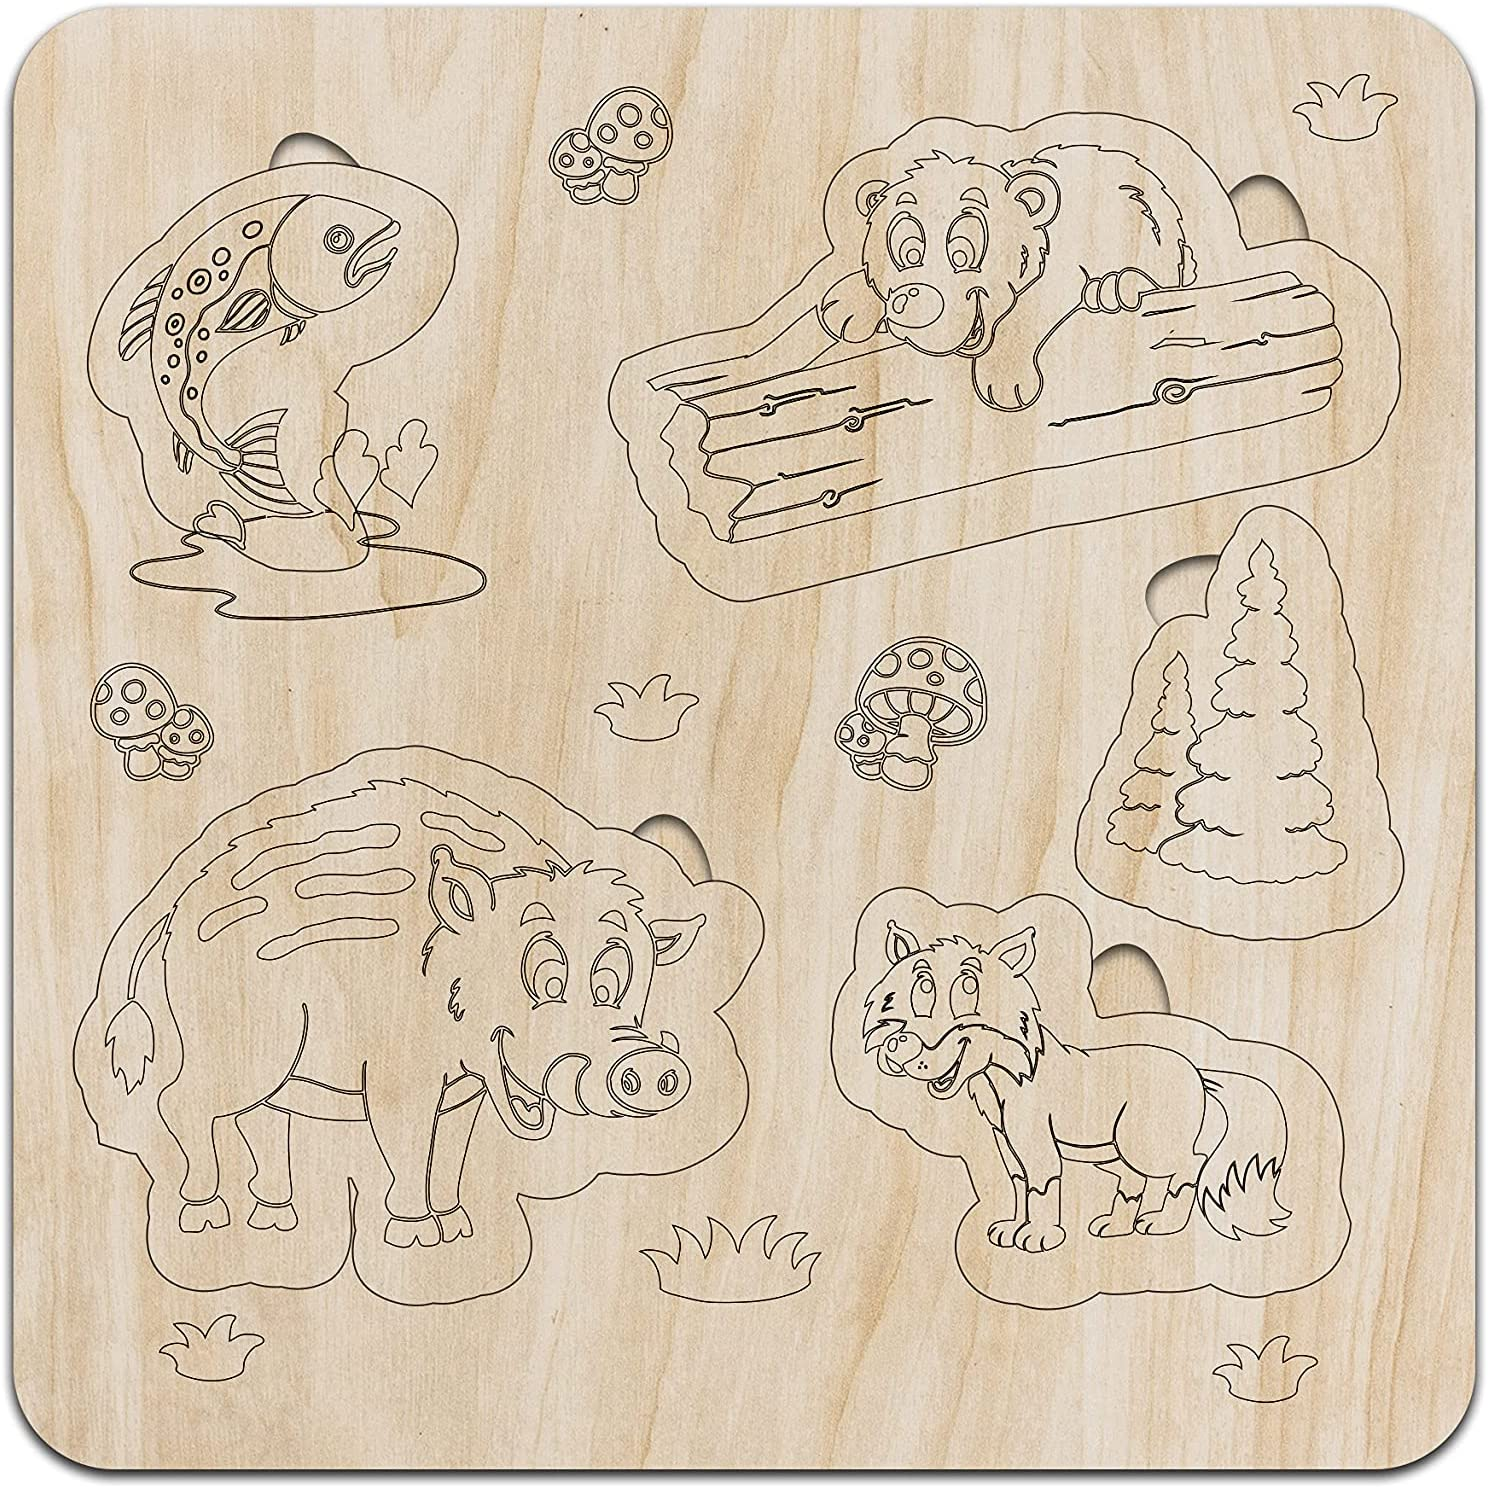 Ambesonne Wooden Puzzle Forest Animals Bear Pond The L Fish Super Special SALE shipfree held and